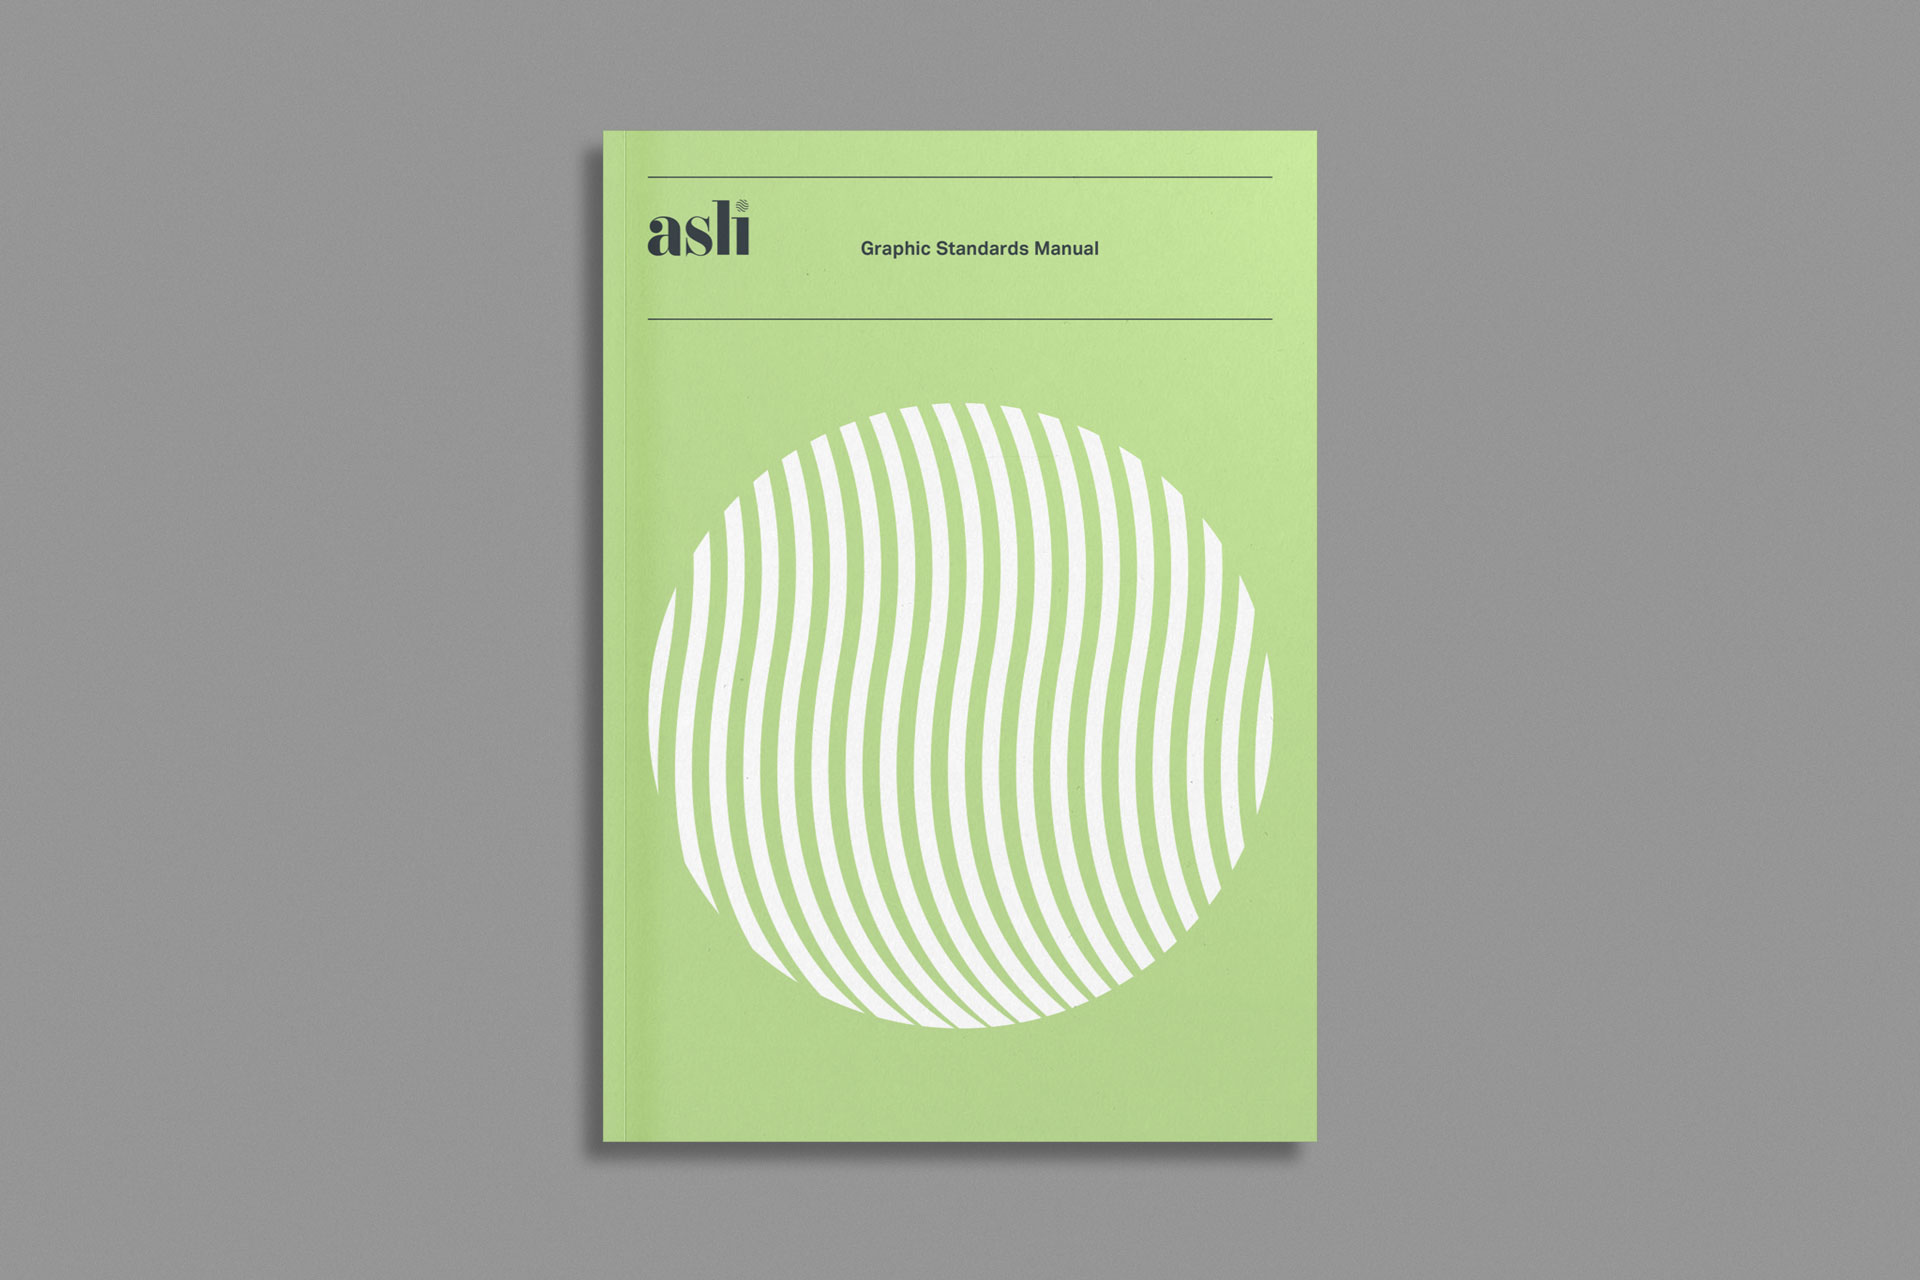 asli Corporate Identity Packaging Design—graphic standards manual